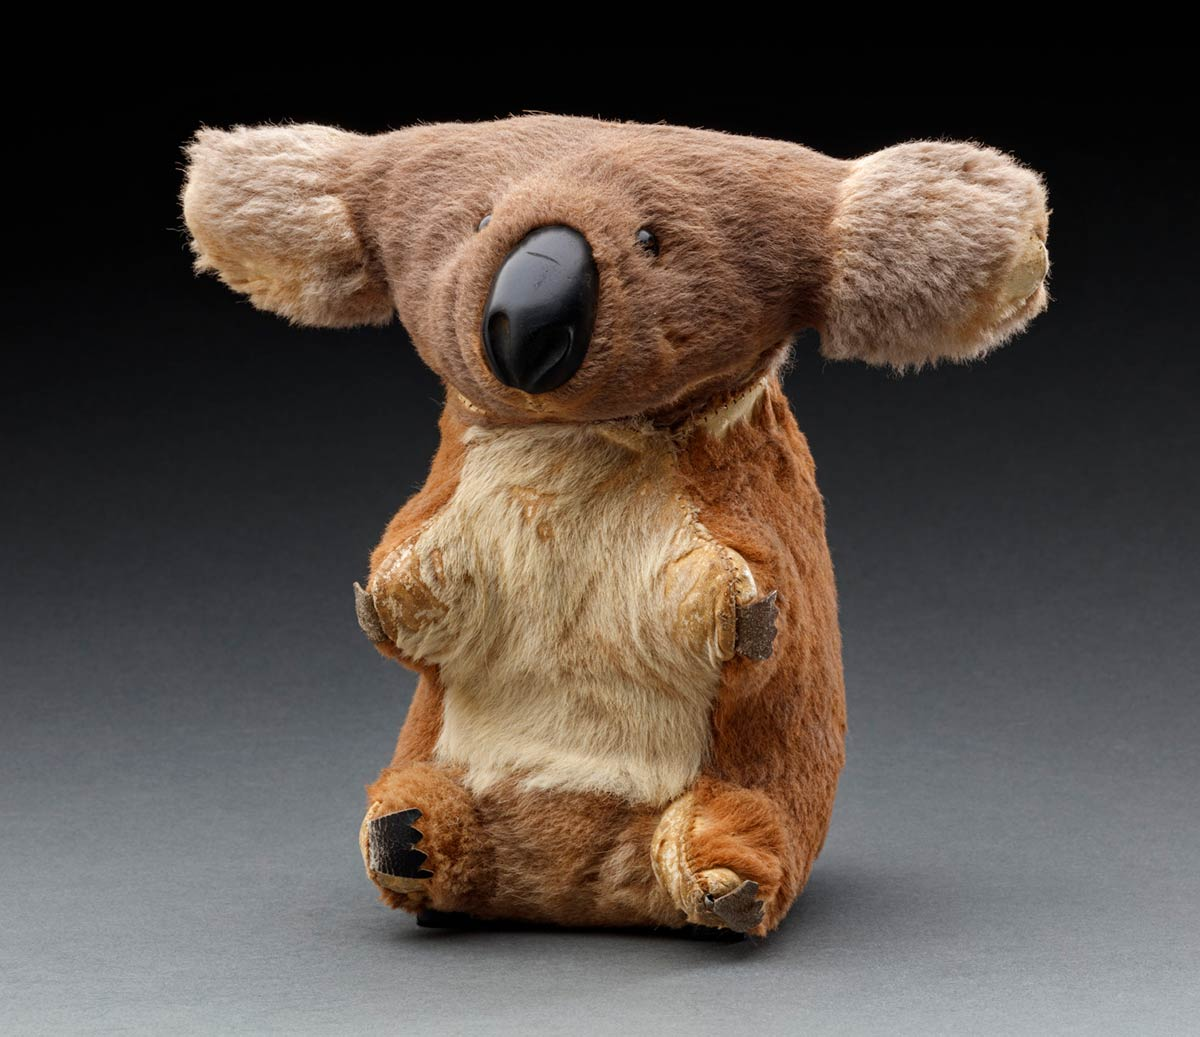 A toy Koala made of grey and brown kangaroo fur. It has small black plastic eyes, and black leather for the nose and claws. There are a number of areas across the toy where the fur is missing. - click to view larger image